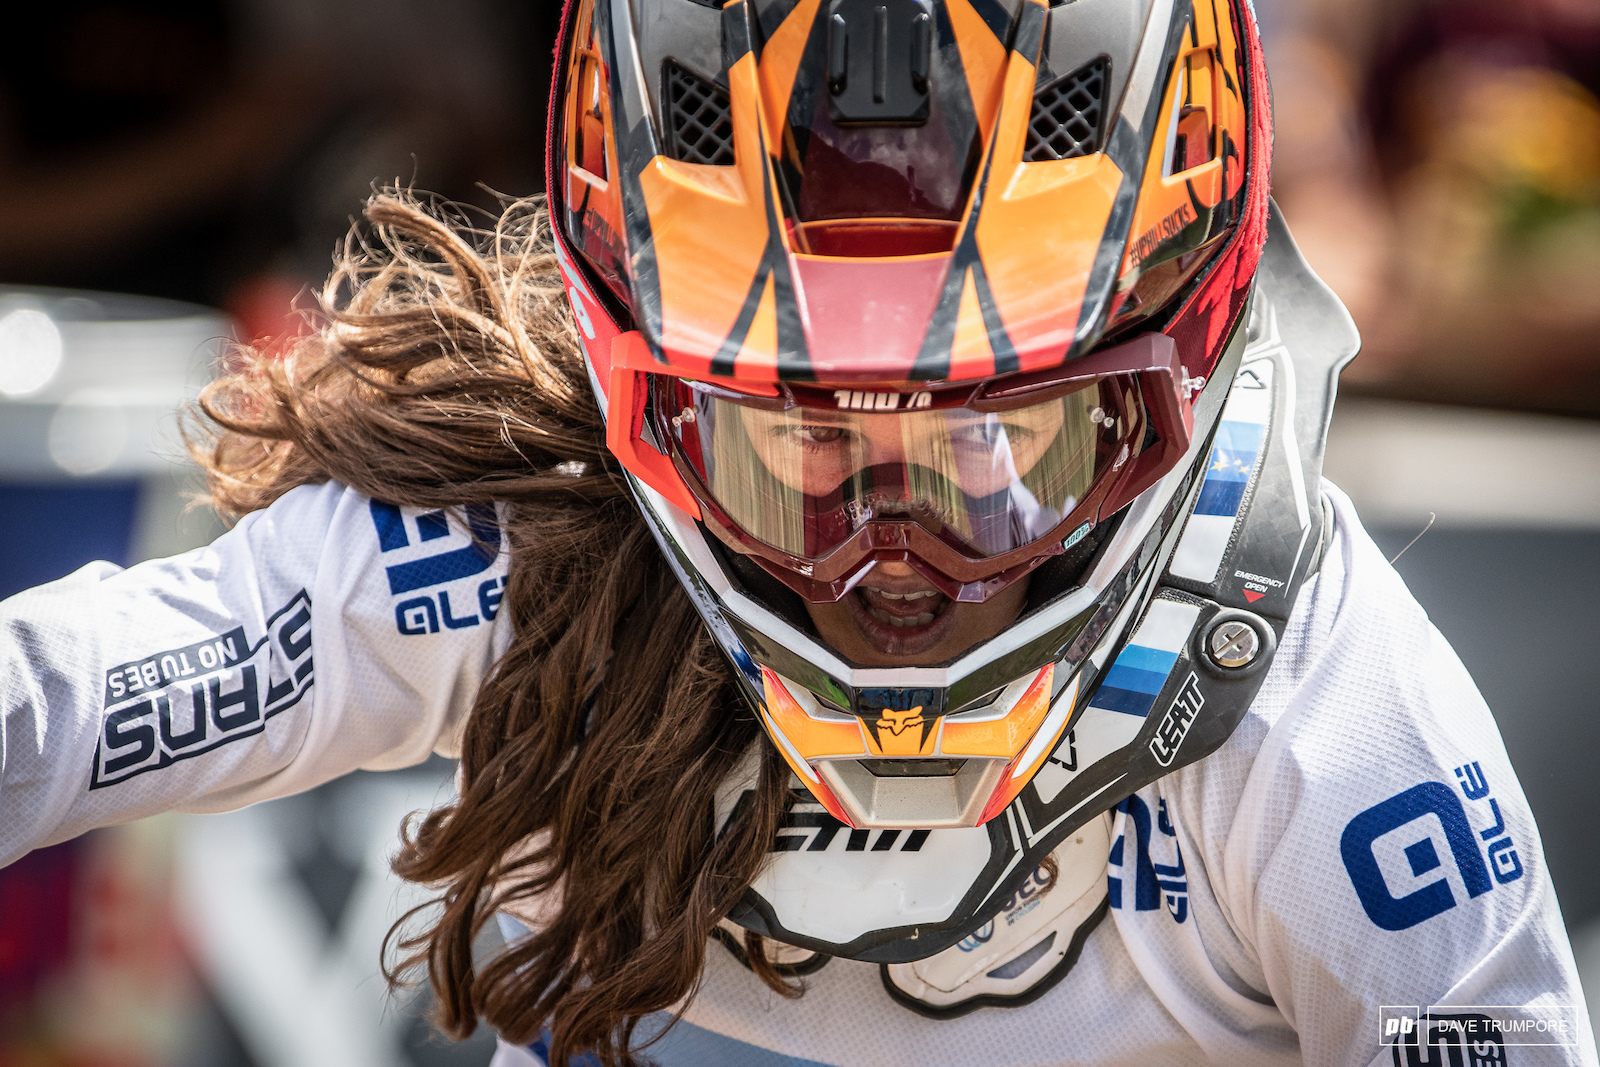 The game face of Camille Balanche as she crossed the line with a time that would land her in 3rd